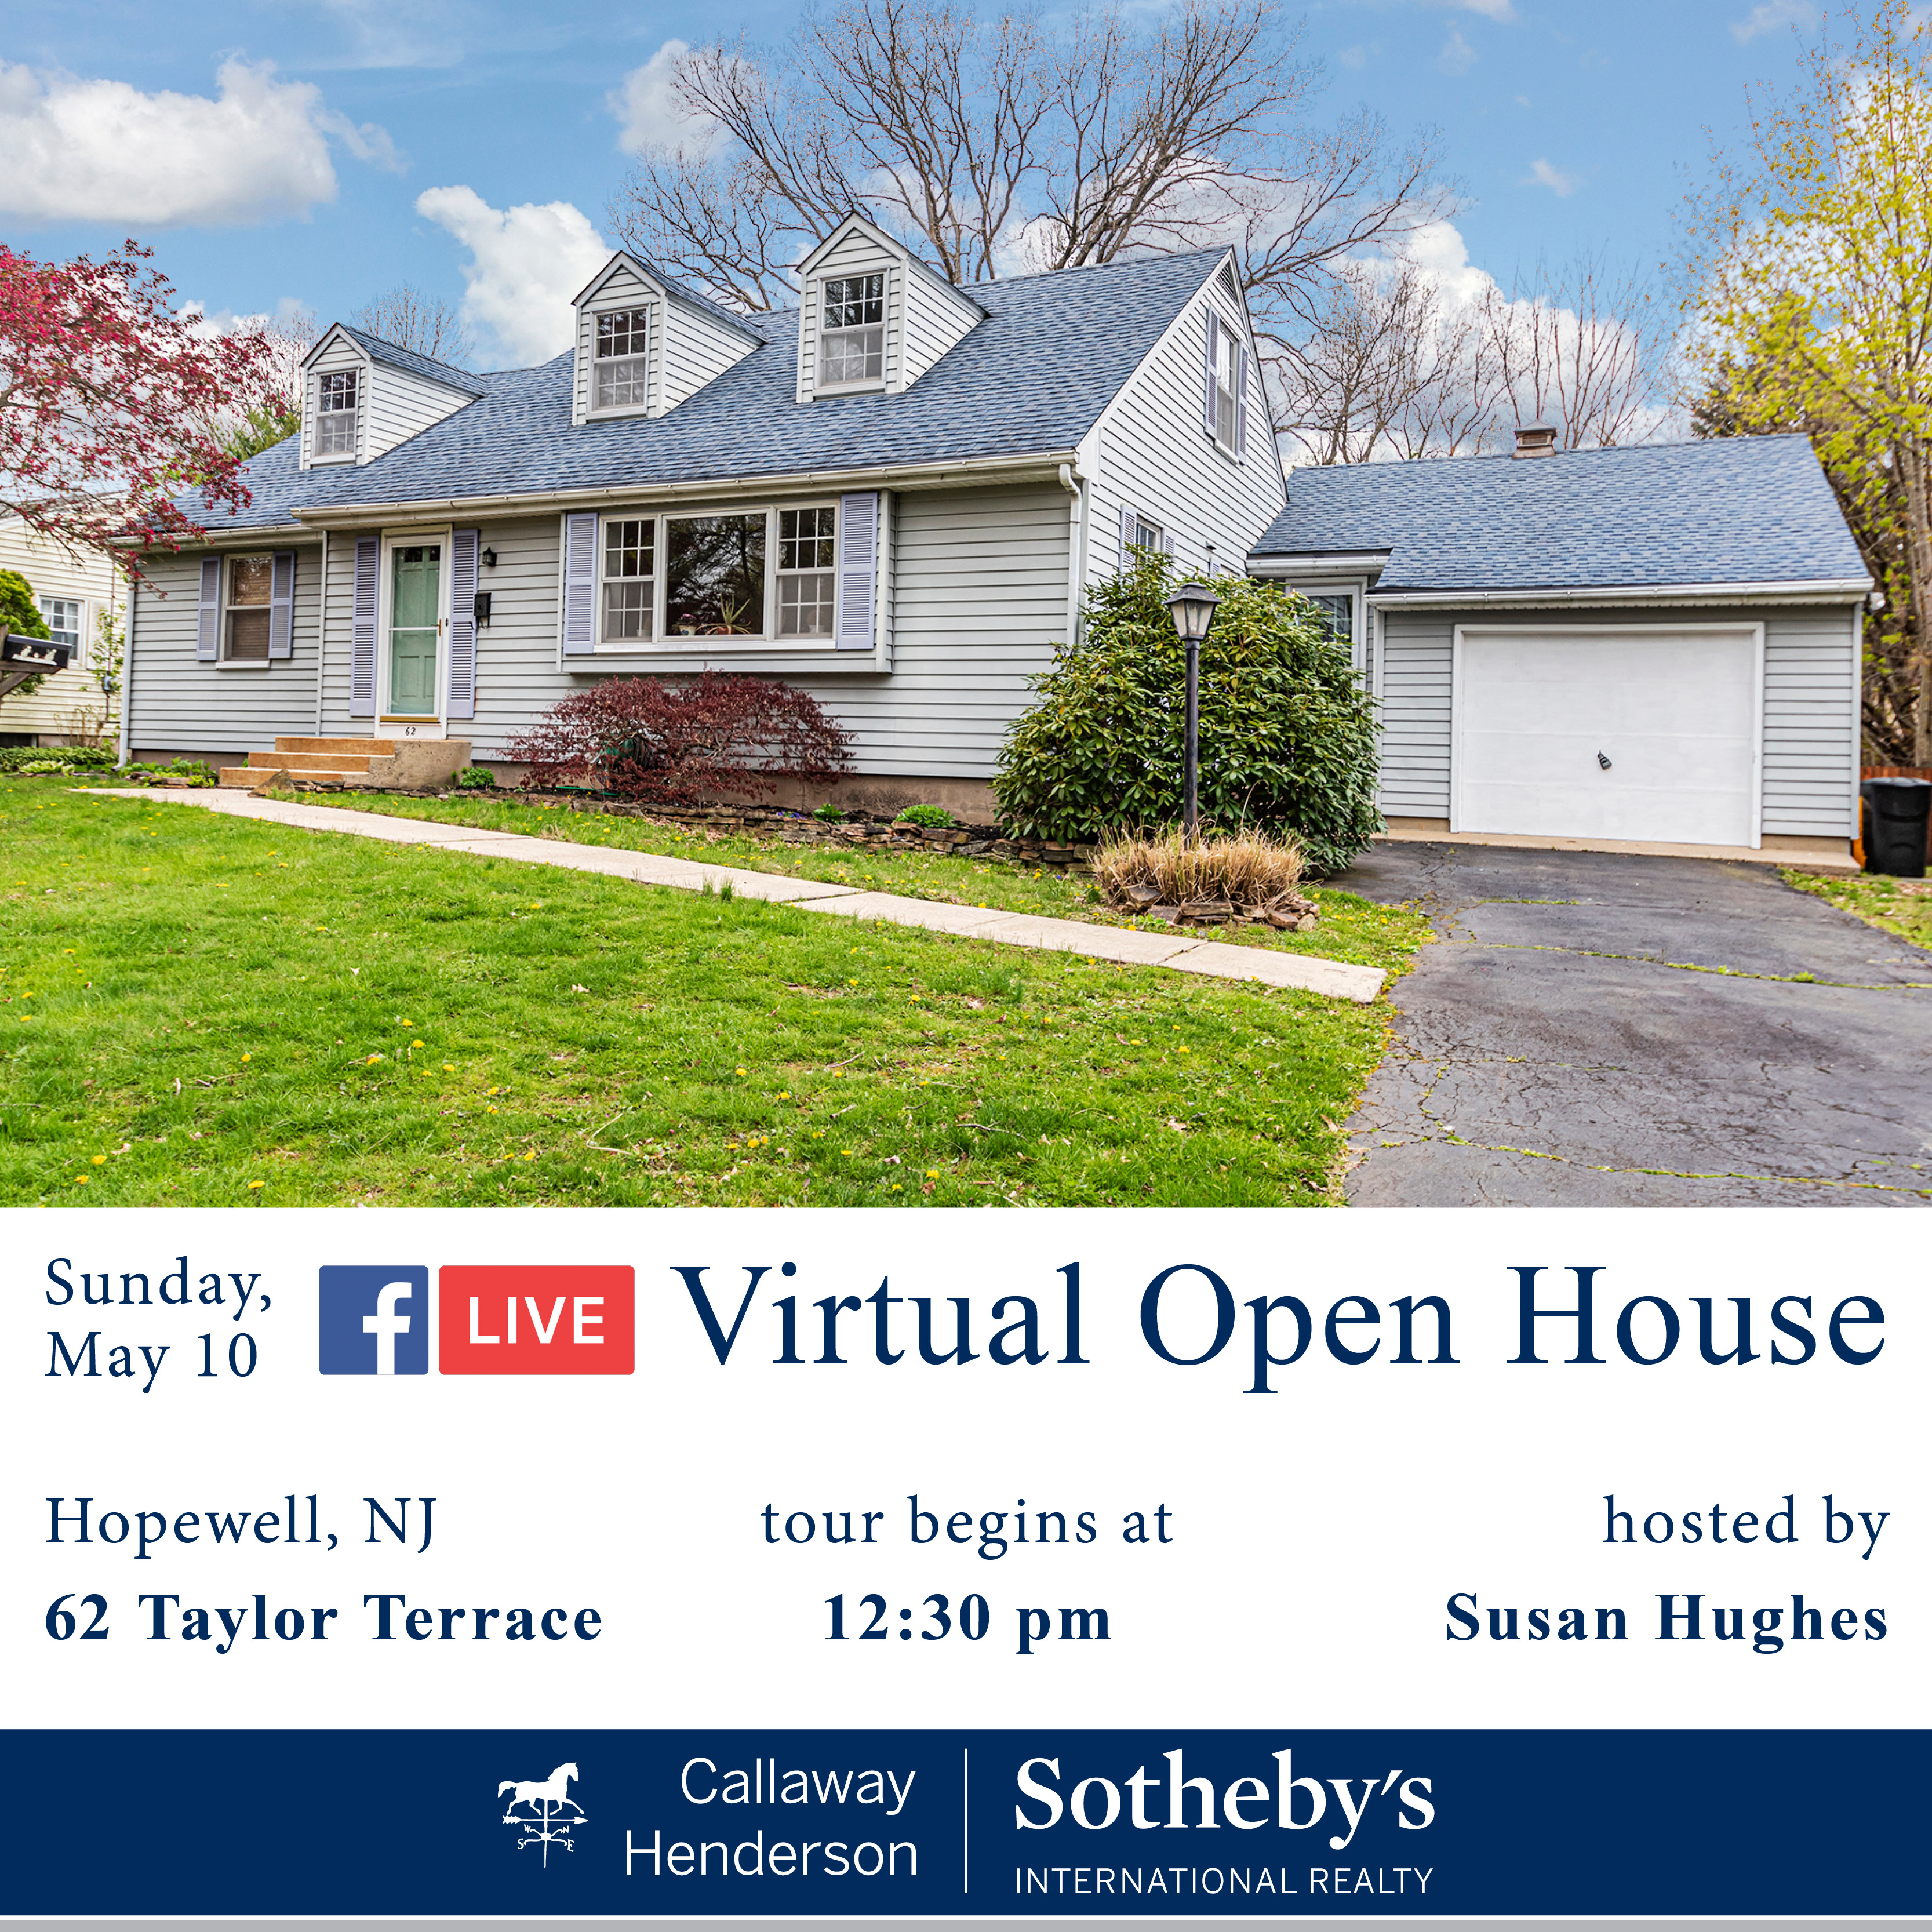 Live Virtual Open House Template-Taylor Terrace 62 20200510